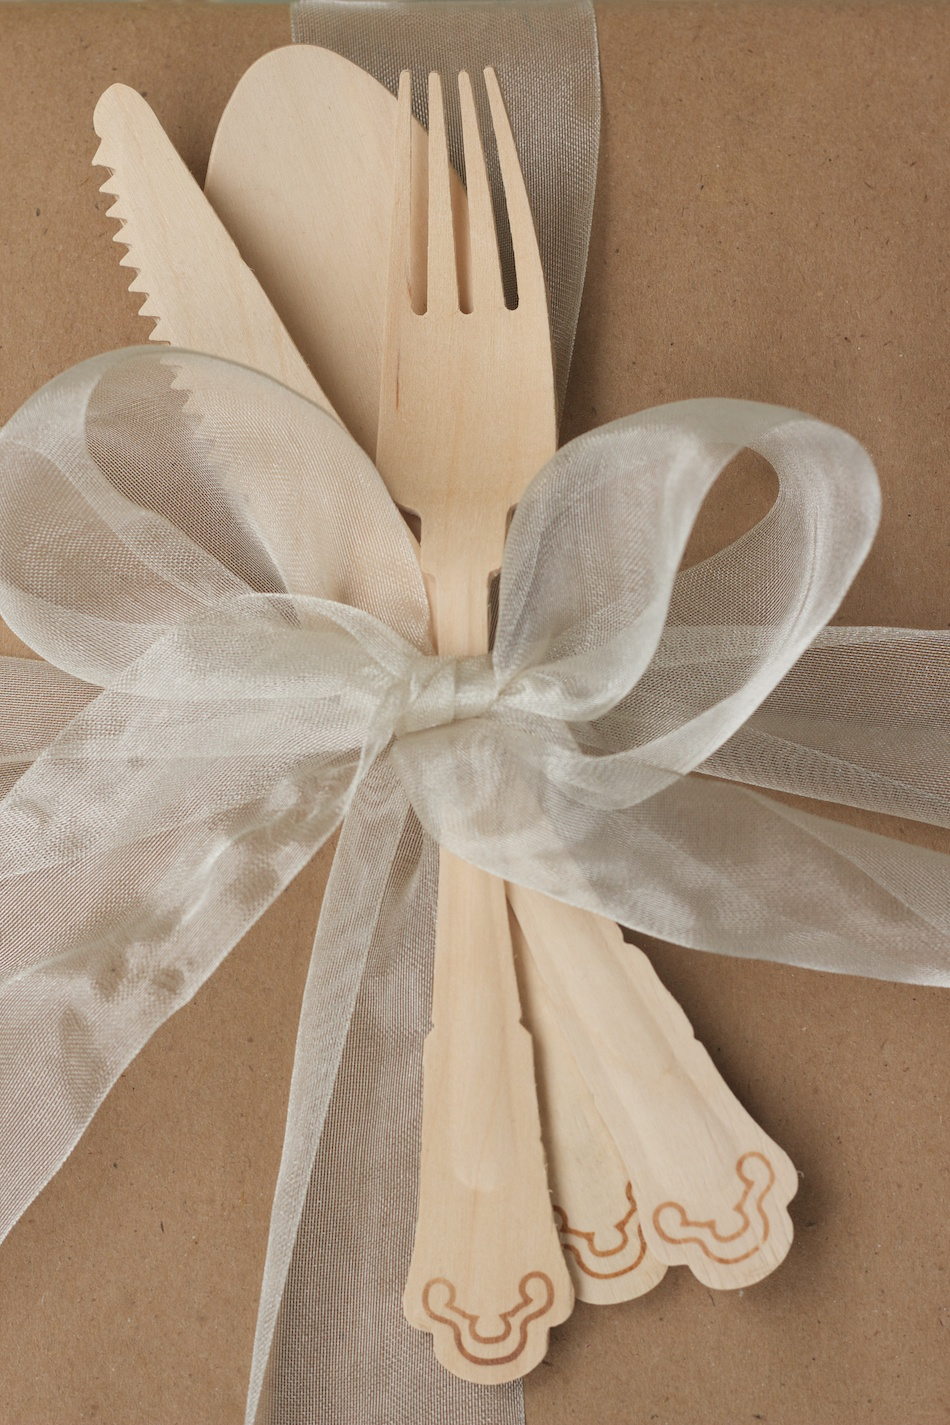 Wooden utensils gift topper